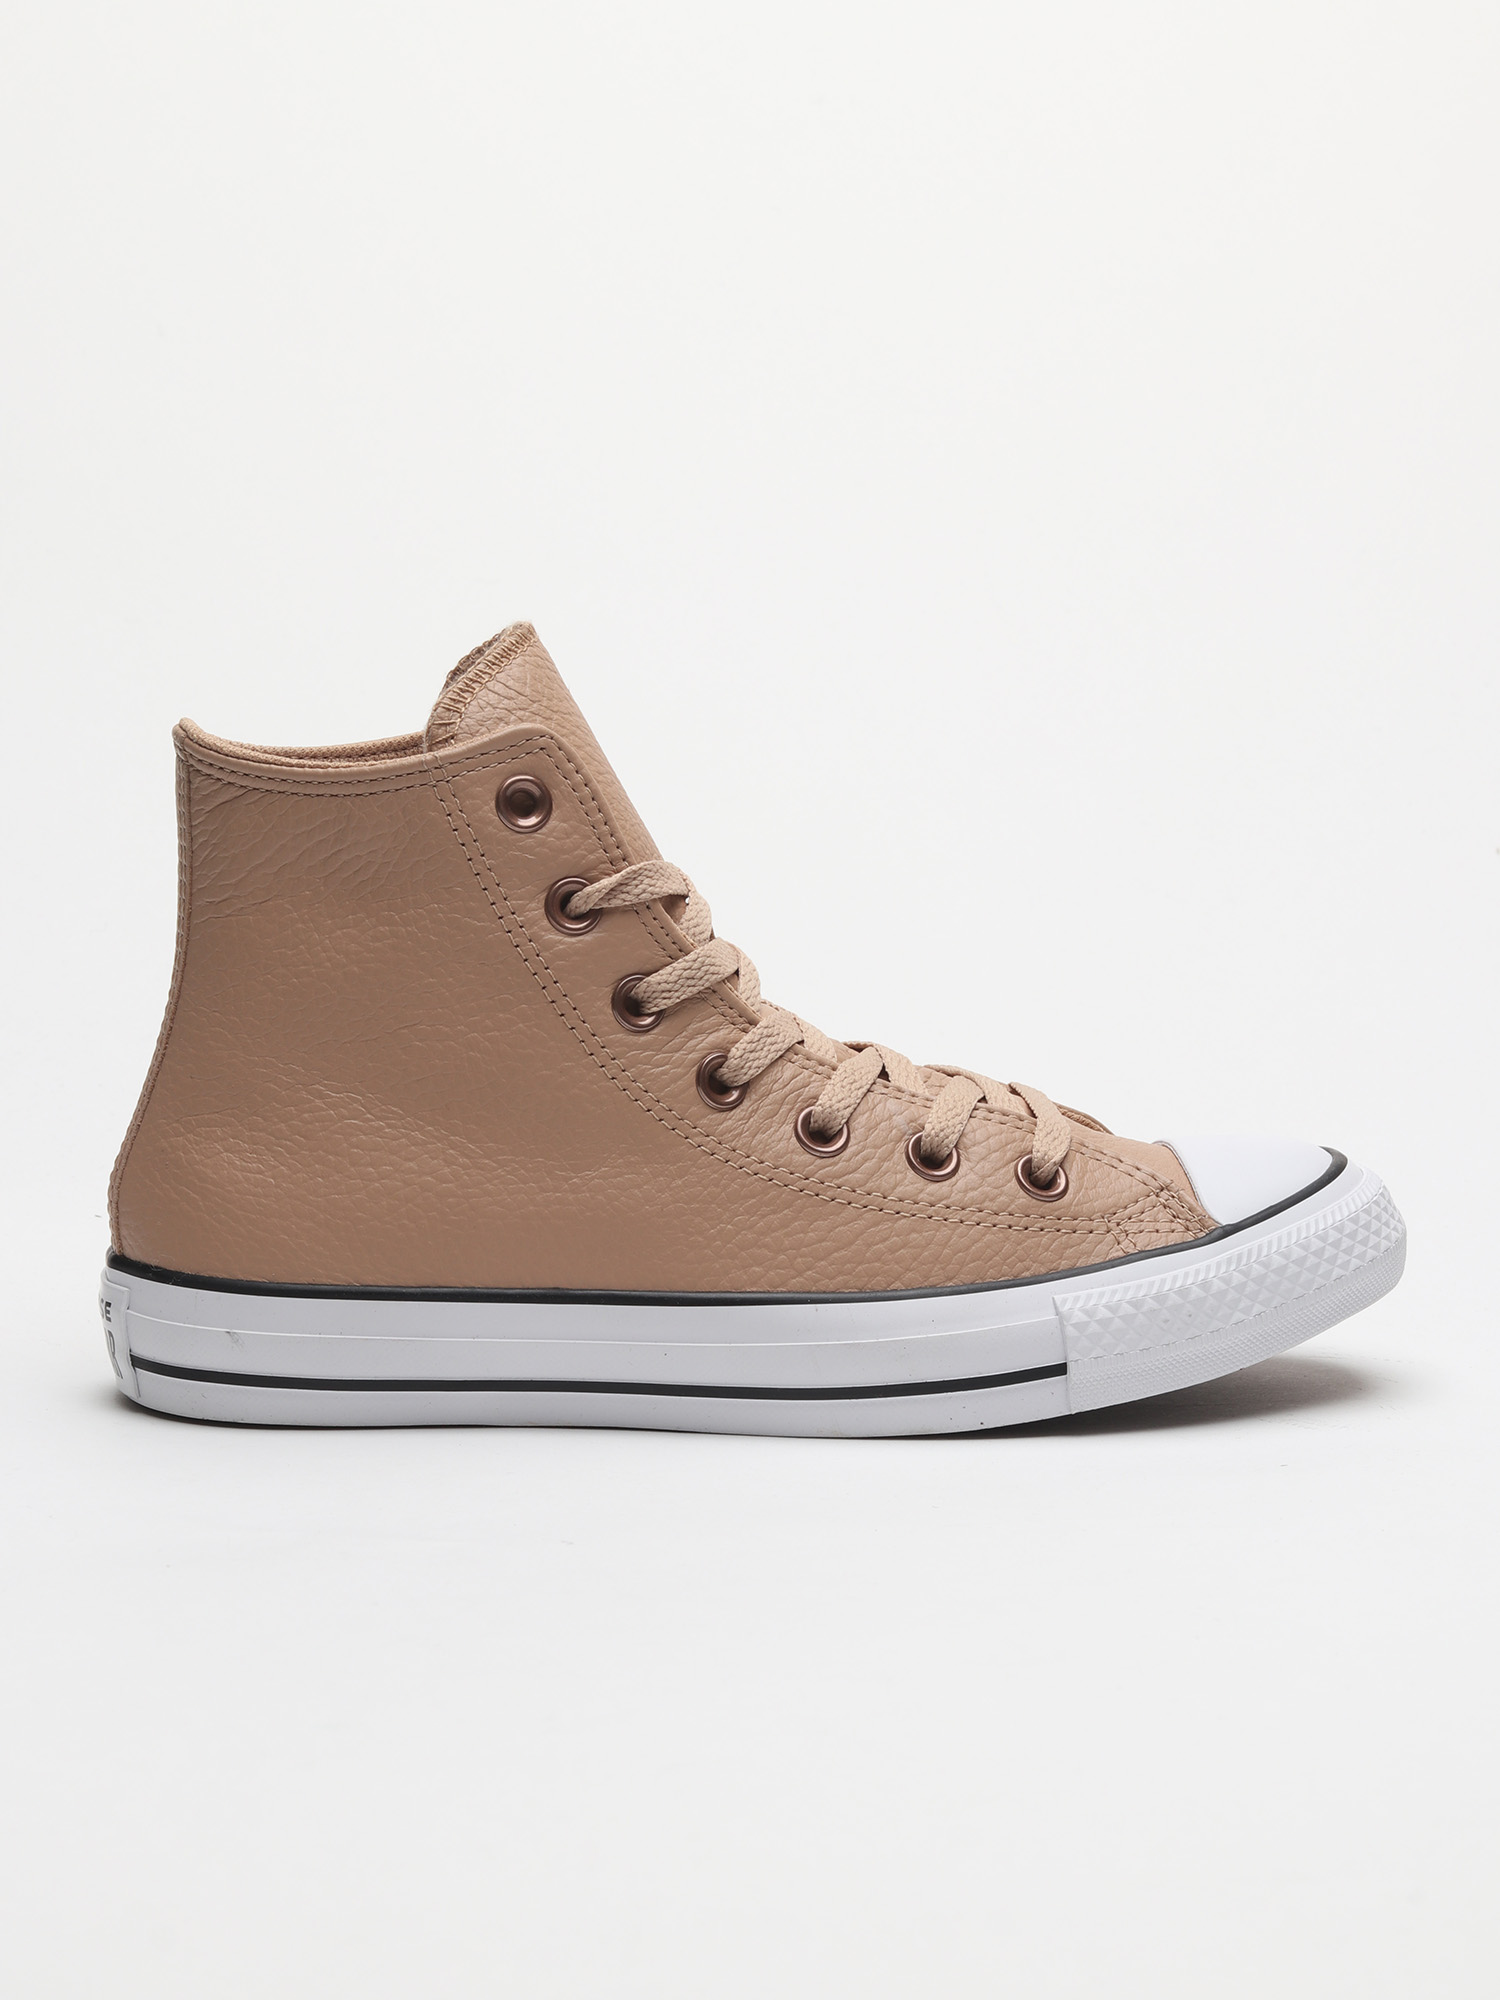 Topánky Converse Chuck Taylor All Star Leather Hnedá